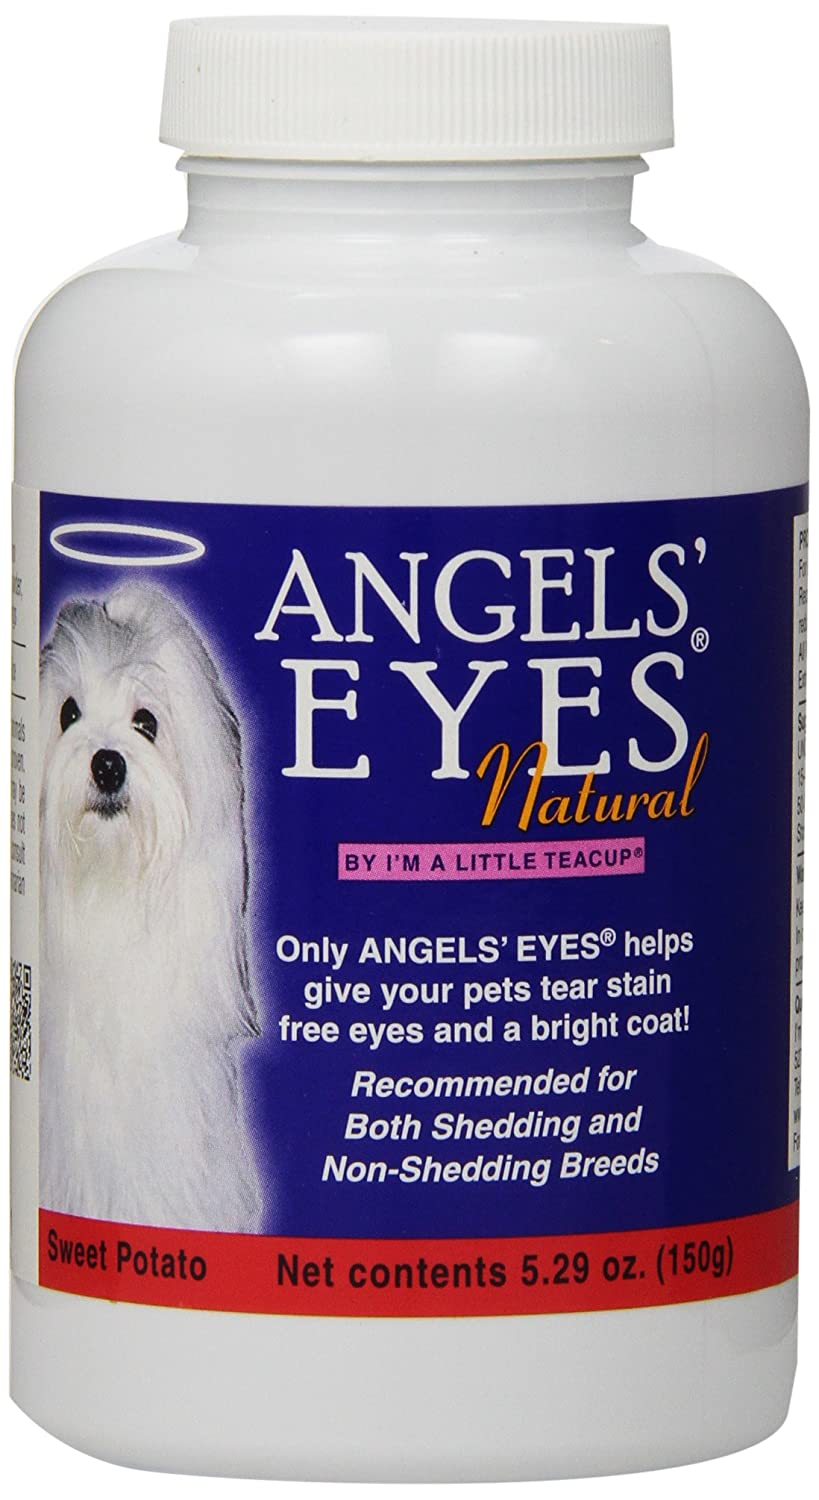 Angels' Eyes Natural Tear Stain Elimination and Remover Sweet Potato Flavor 225 Gram